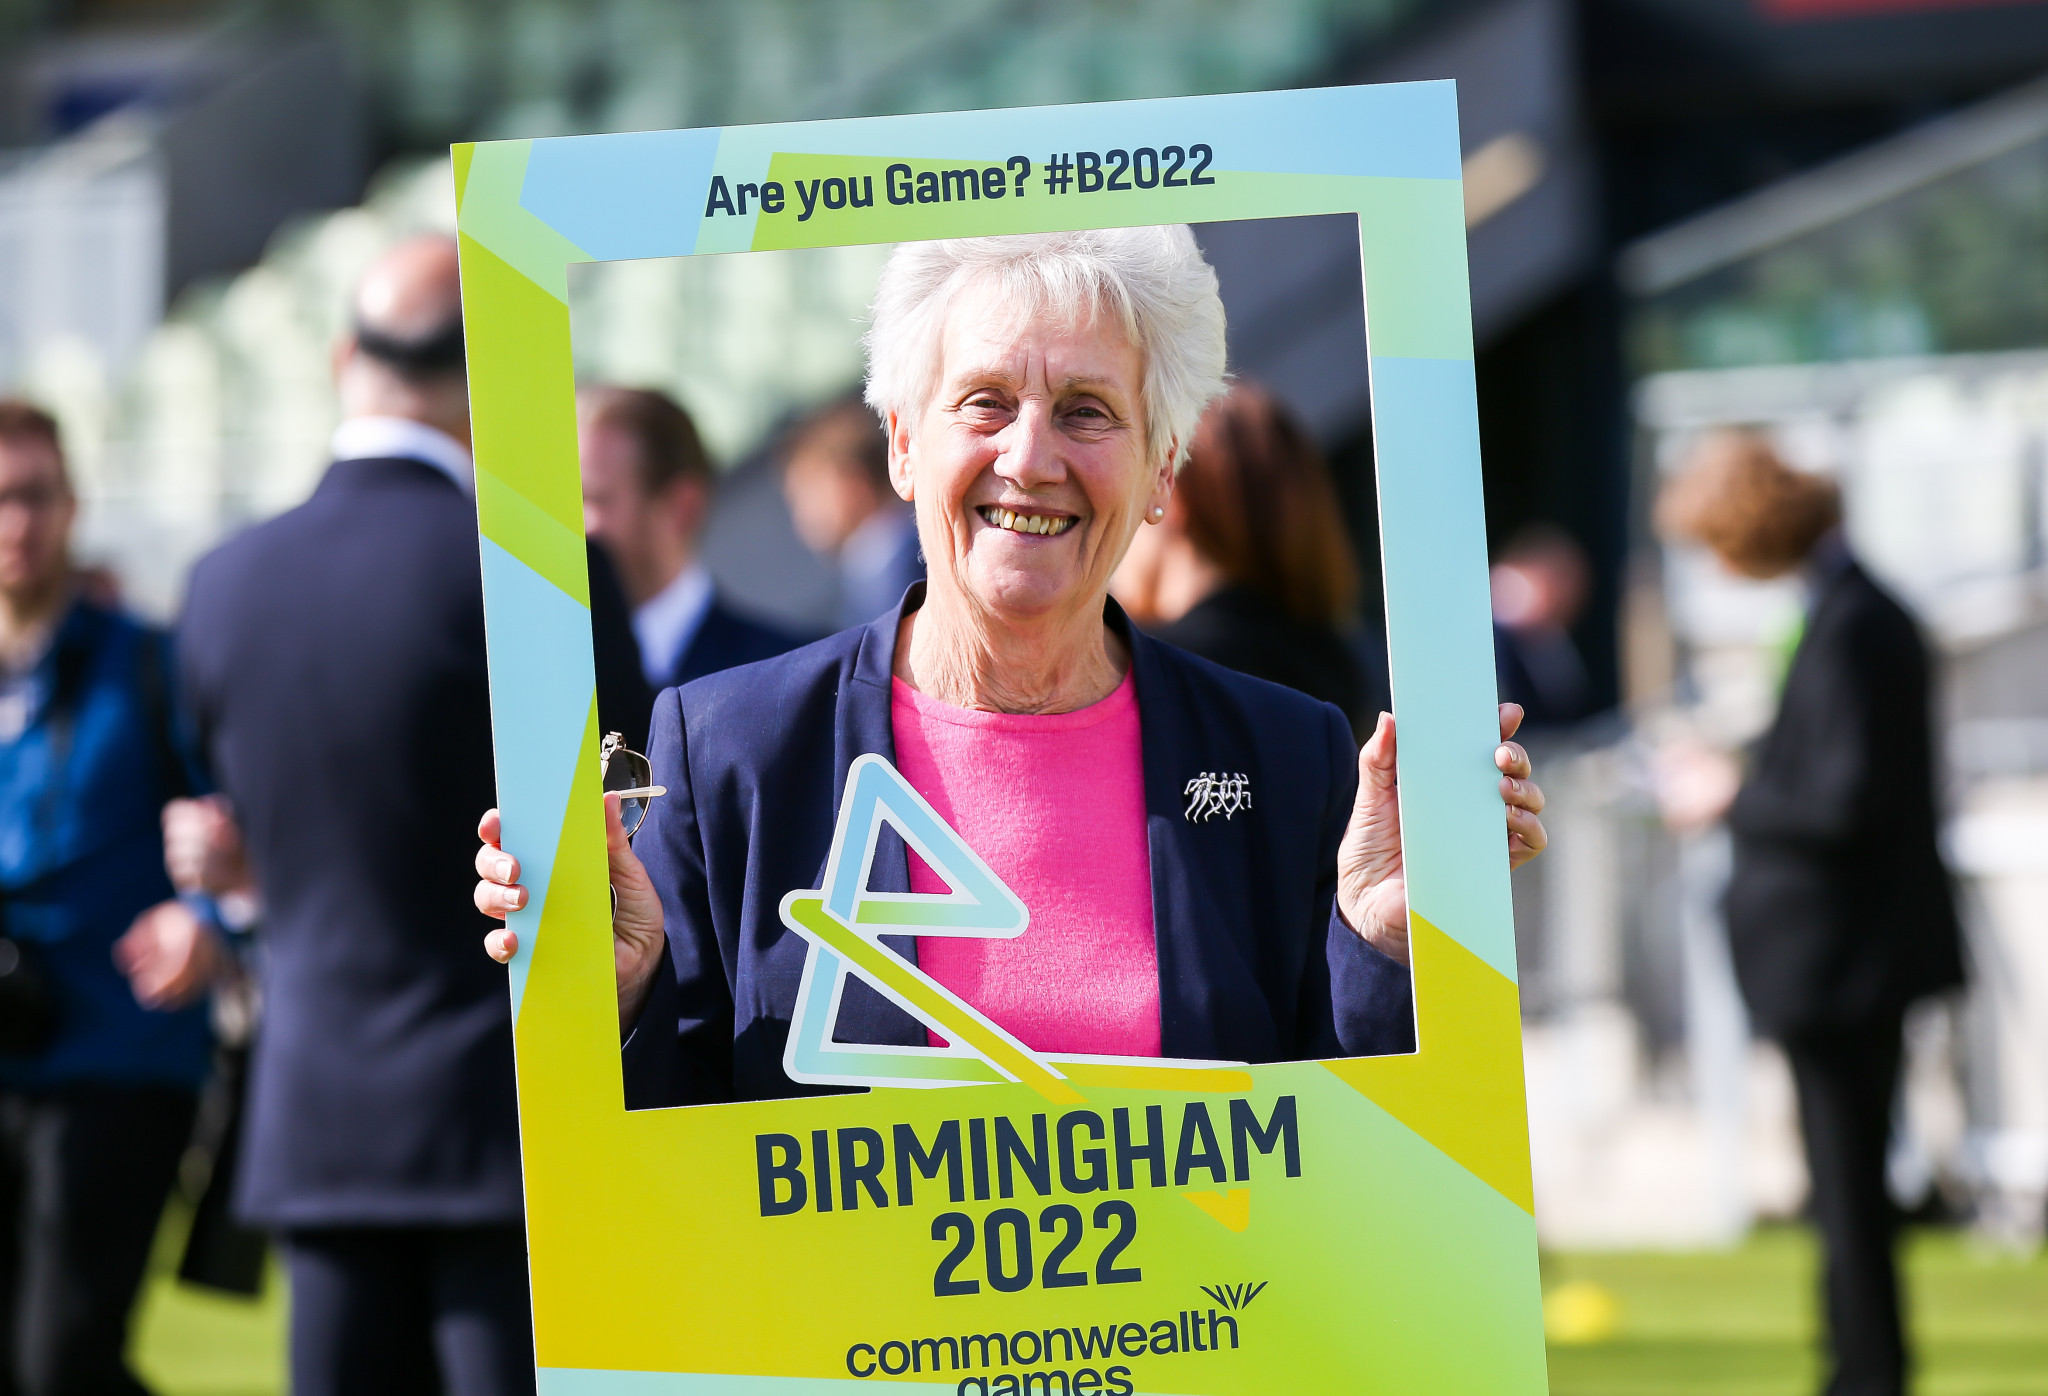 CGF President Martin resigns from Birmingham 2022 Board to increase representation